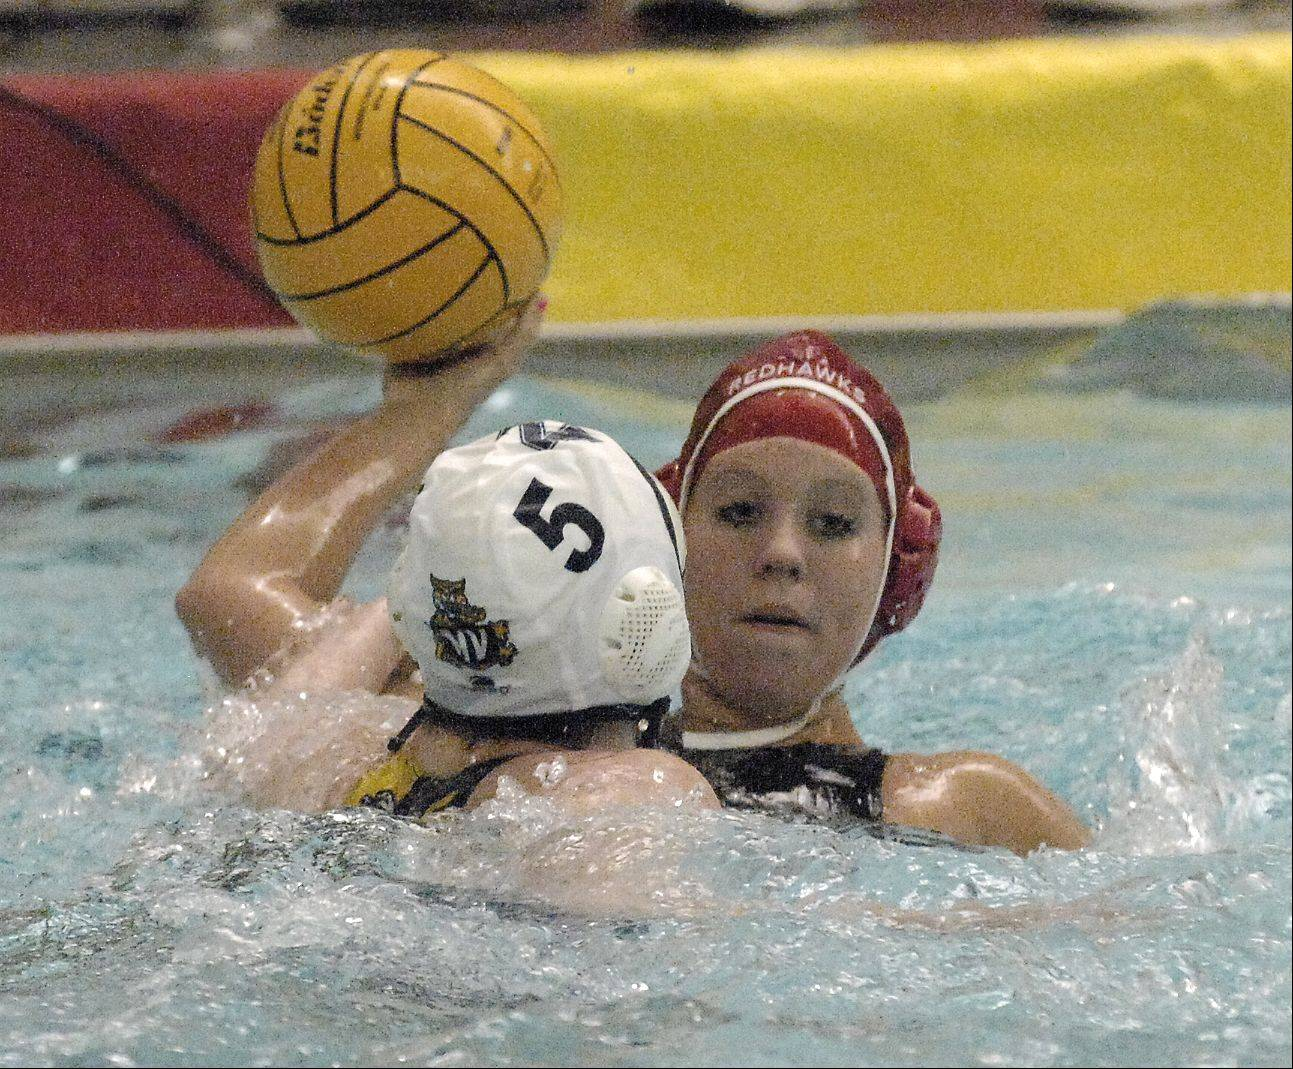 Jenny Doyle of Naperville Central looks to pass the ball around Broke Bedford of Neuqua Valley battle for control of the ball during varsity girls water polo at Central, Thursday.